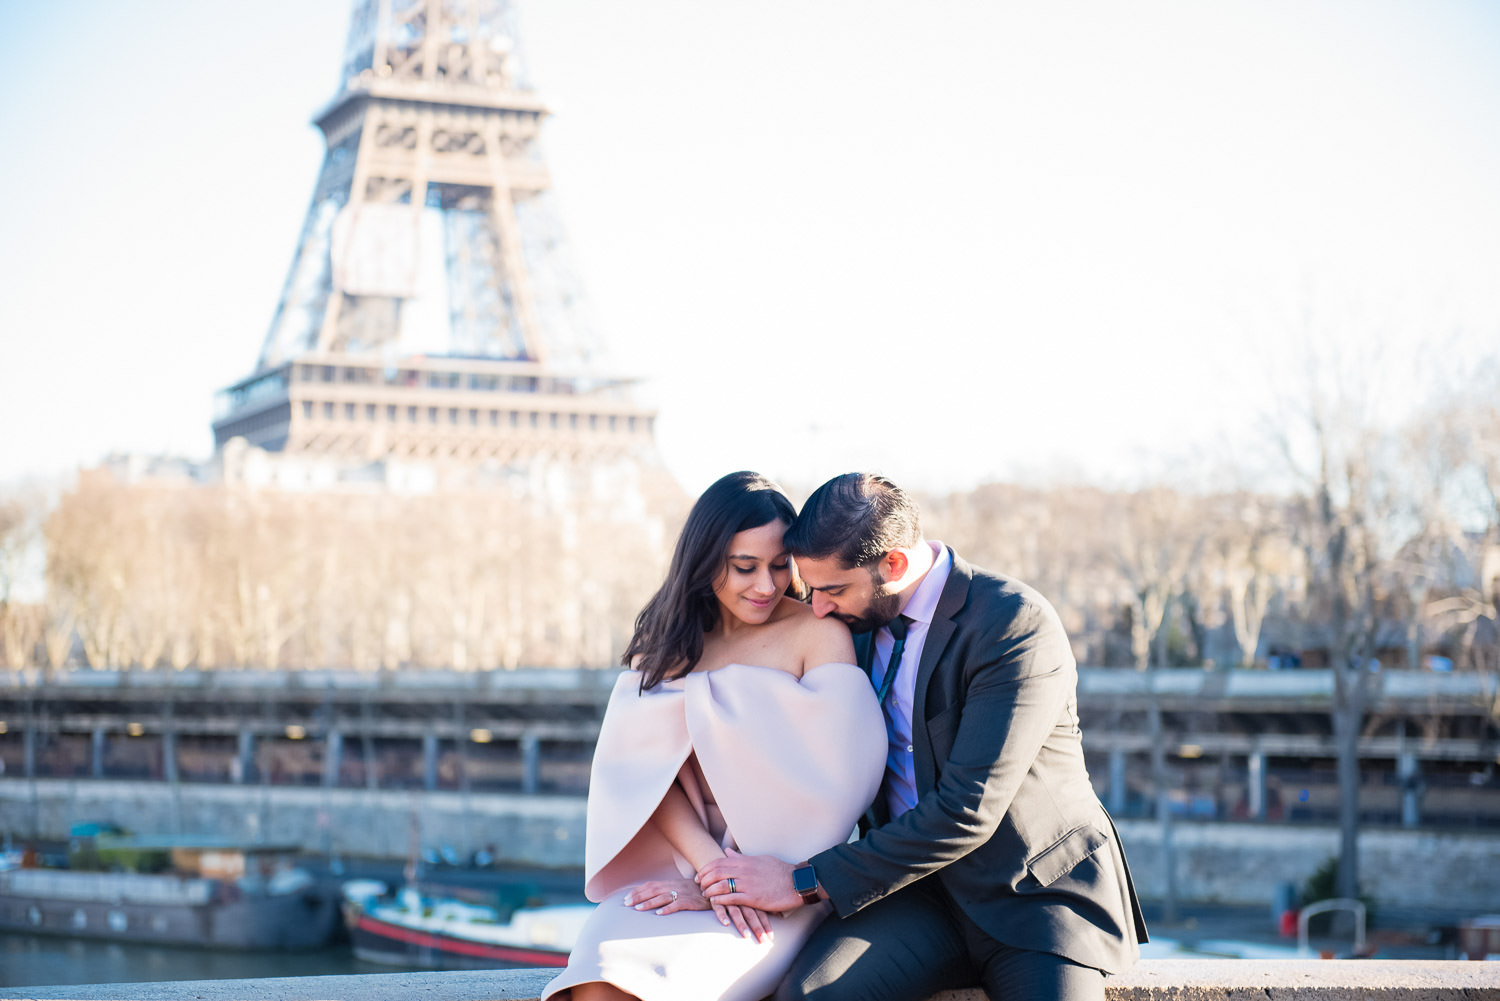 Copy of Copy of Paris photographer for honeymoon photoshoots